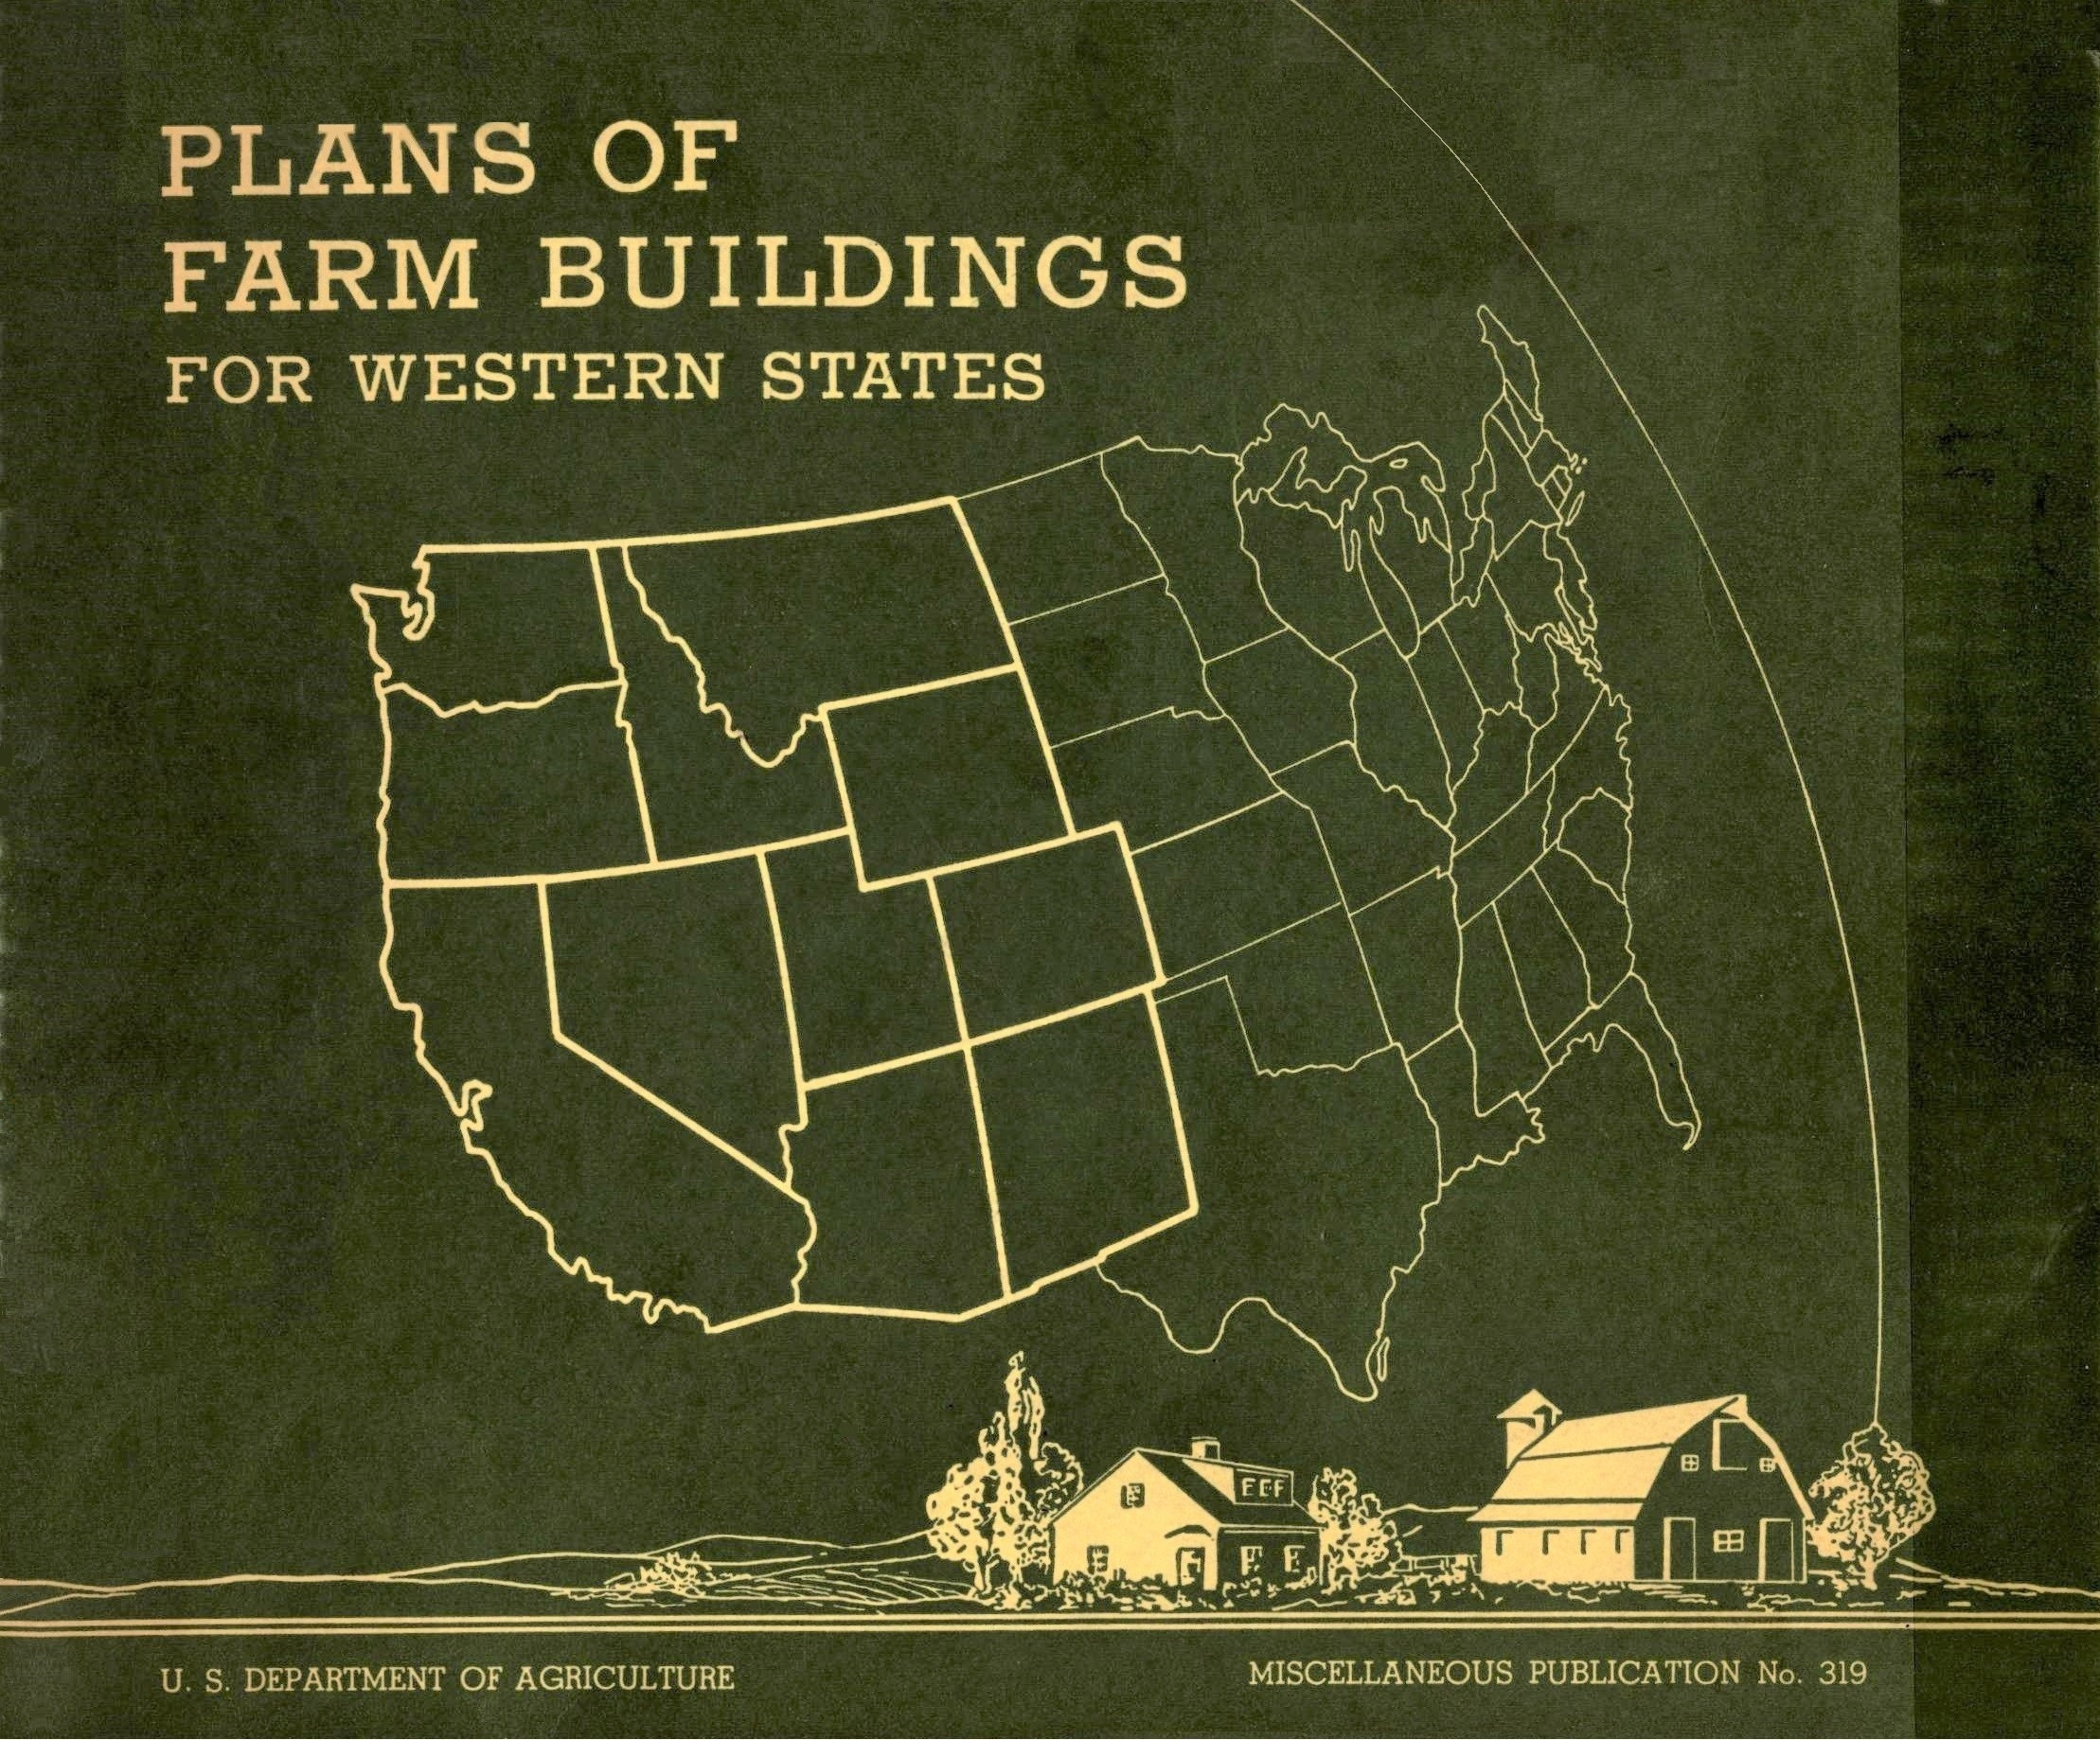 Plans of Farm Buildings for Western States